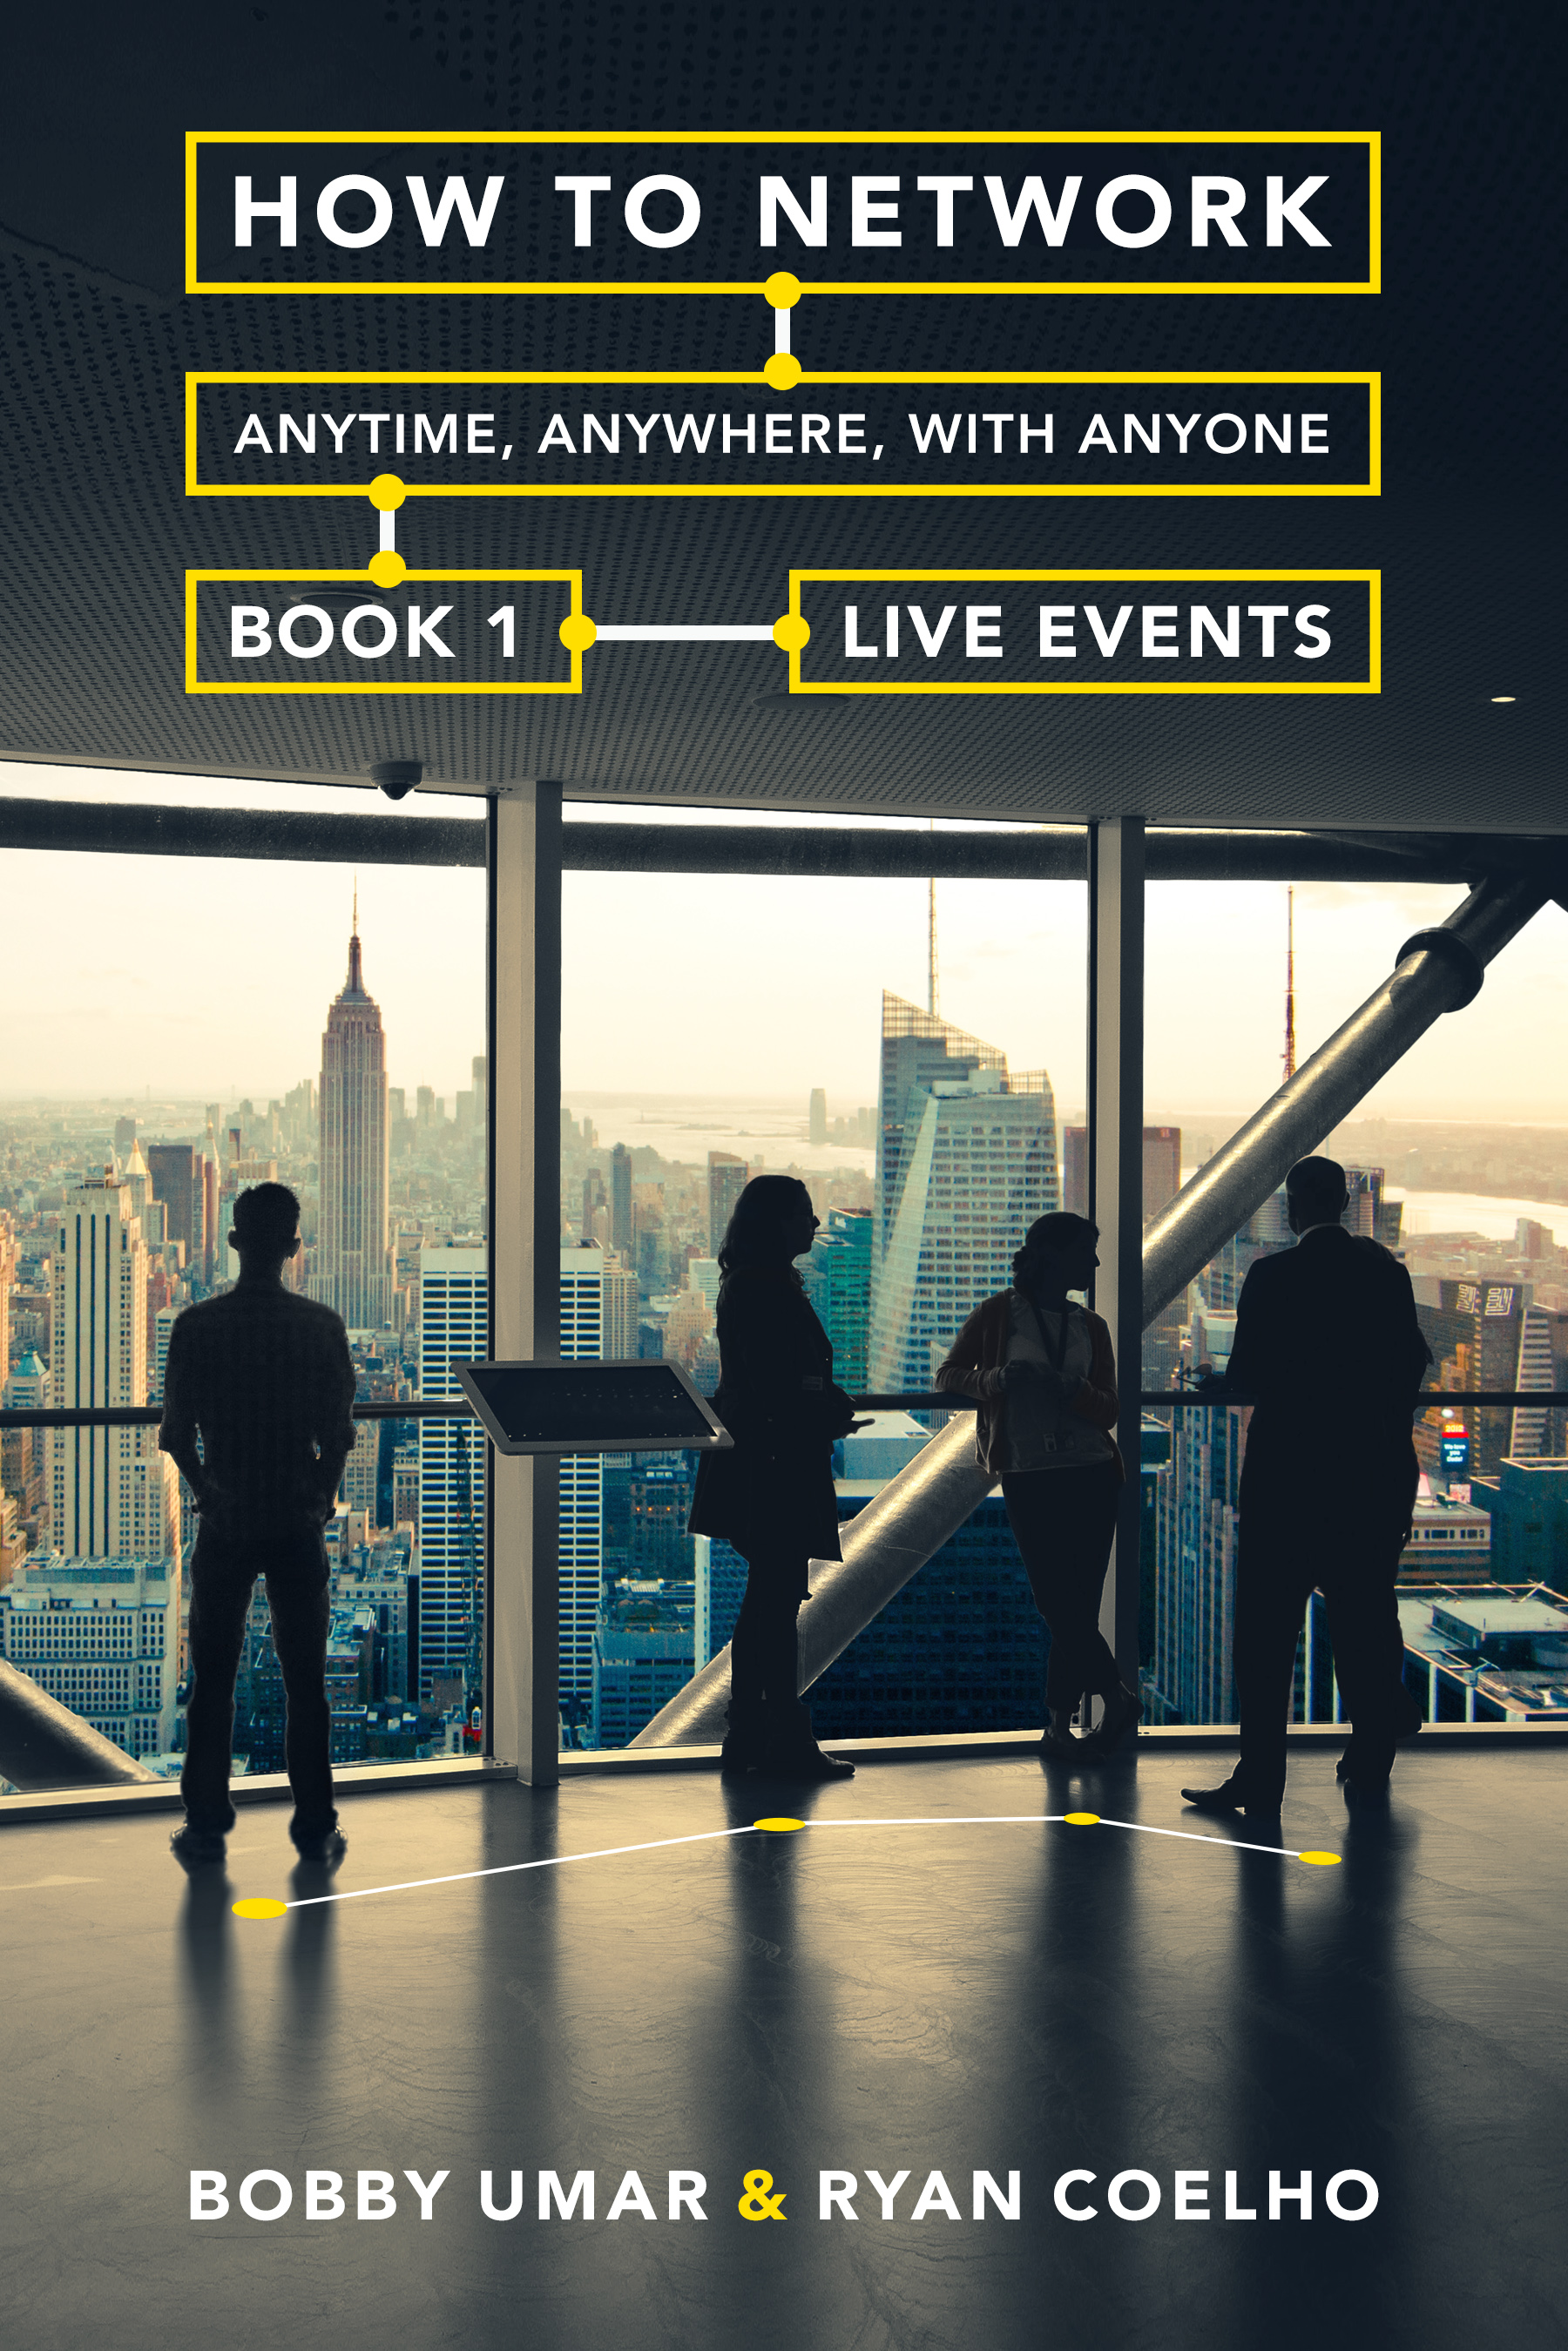 How To Network Anytime, Anywhere, With Anyone